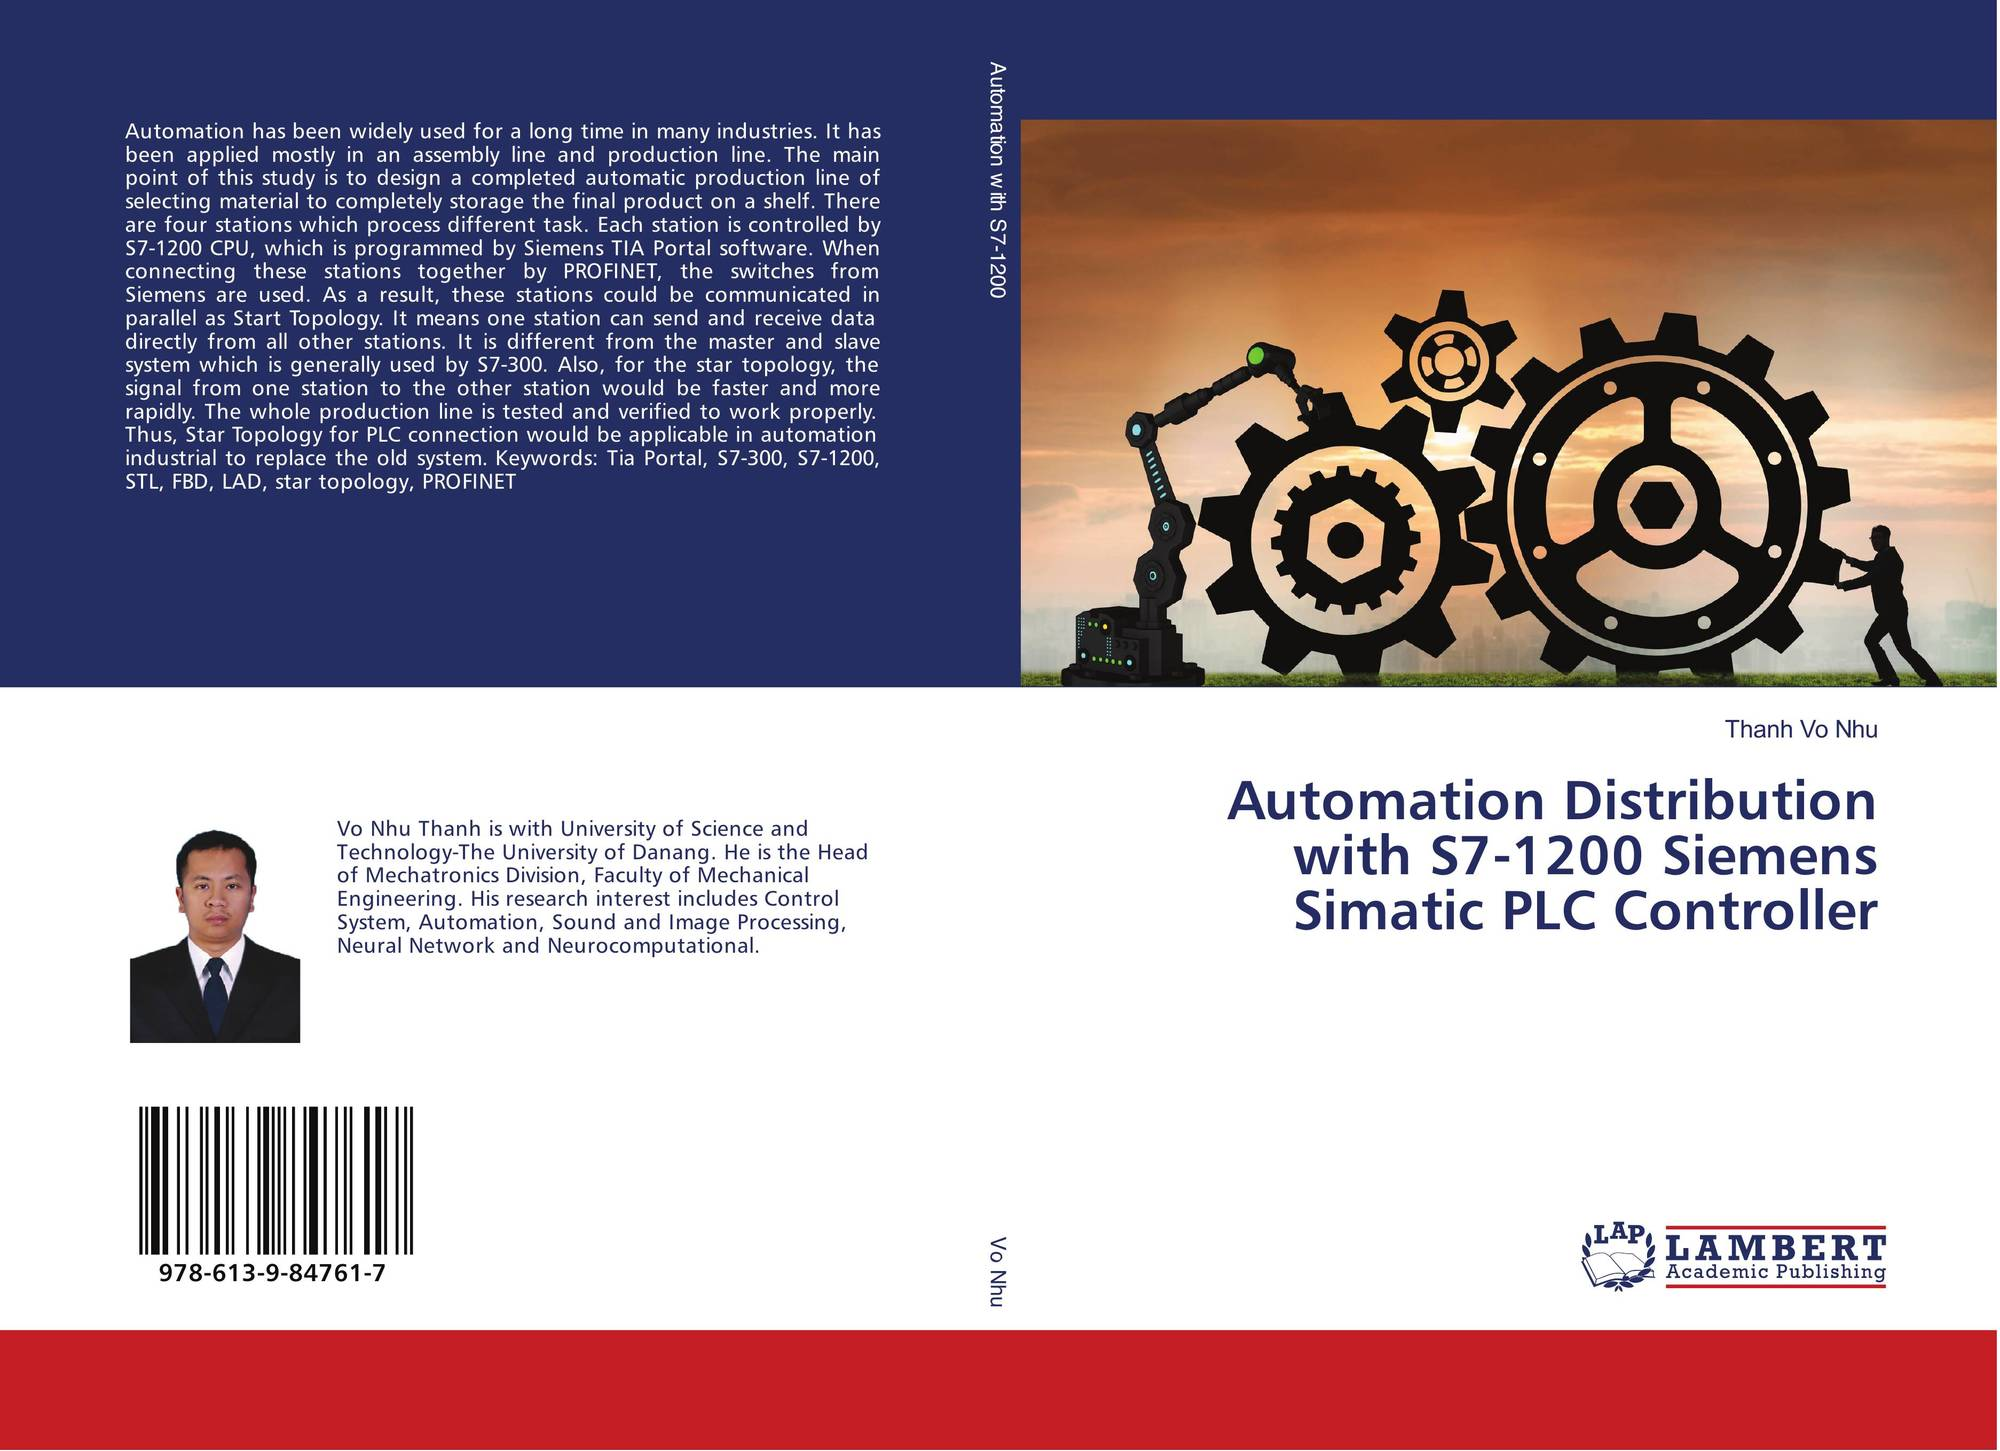 Automation Distribution with S7-1200 Siemens Simatic PLC Controller